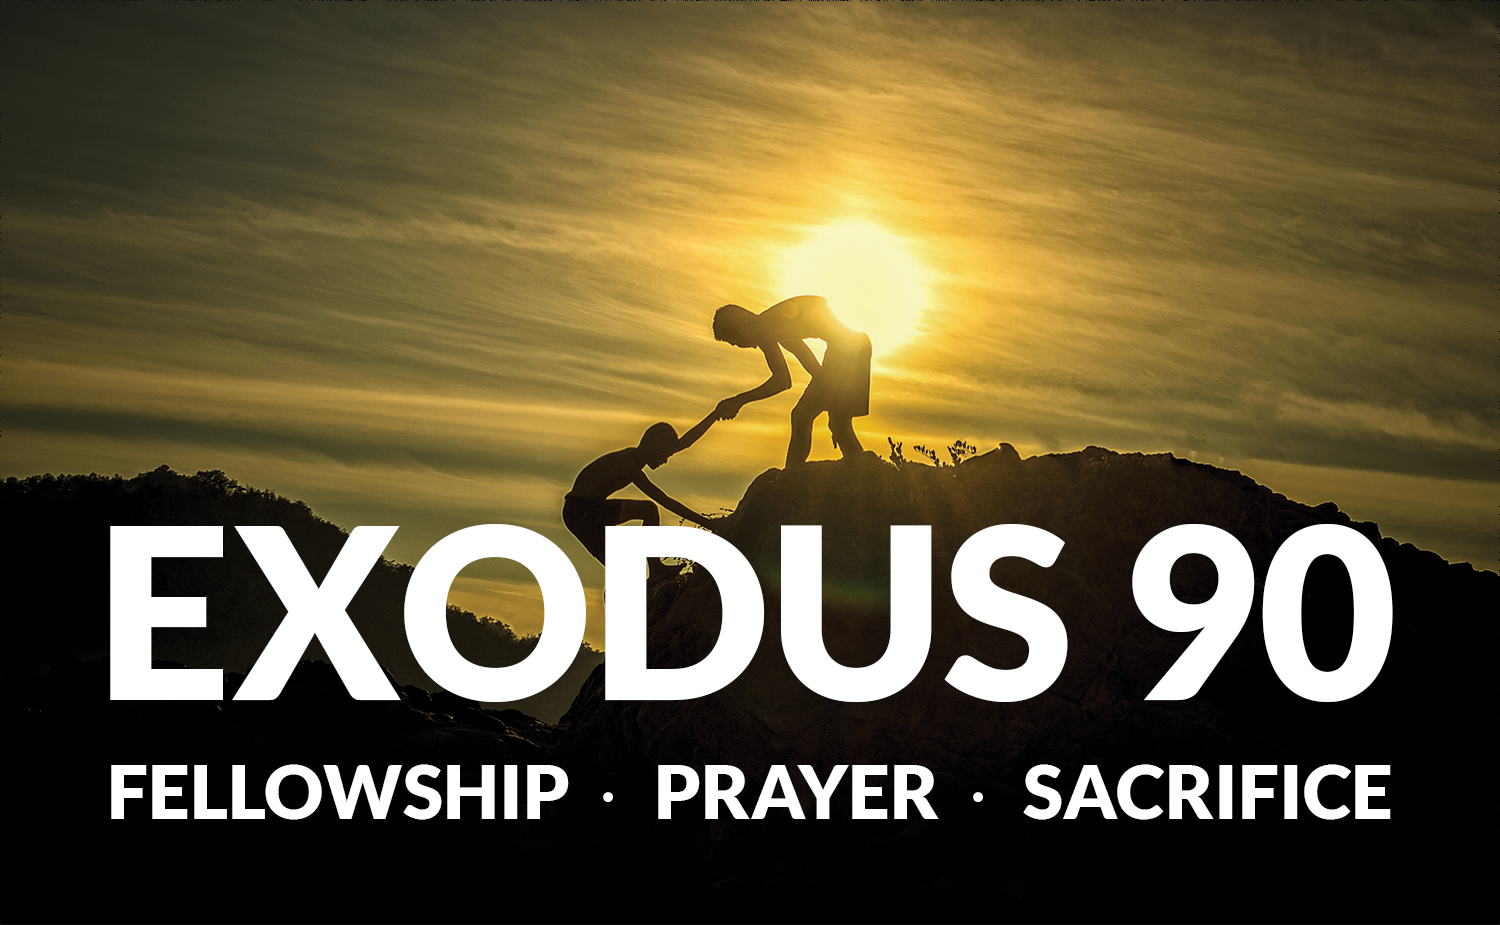 exodus 90 2018 web graphic.png